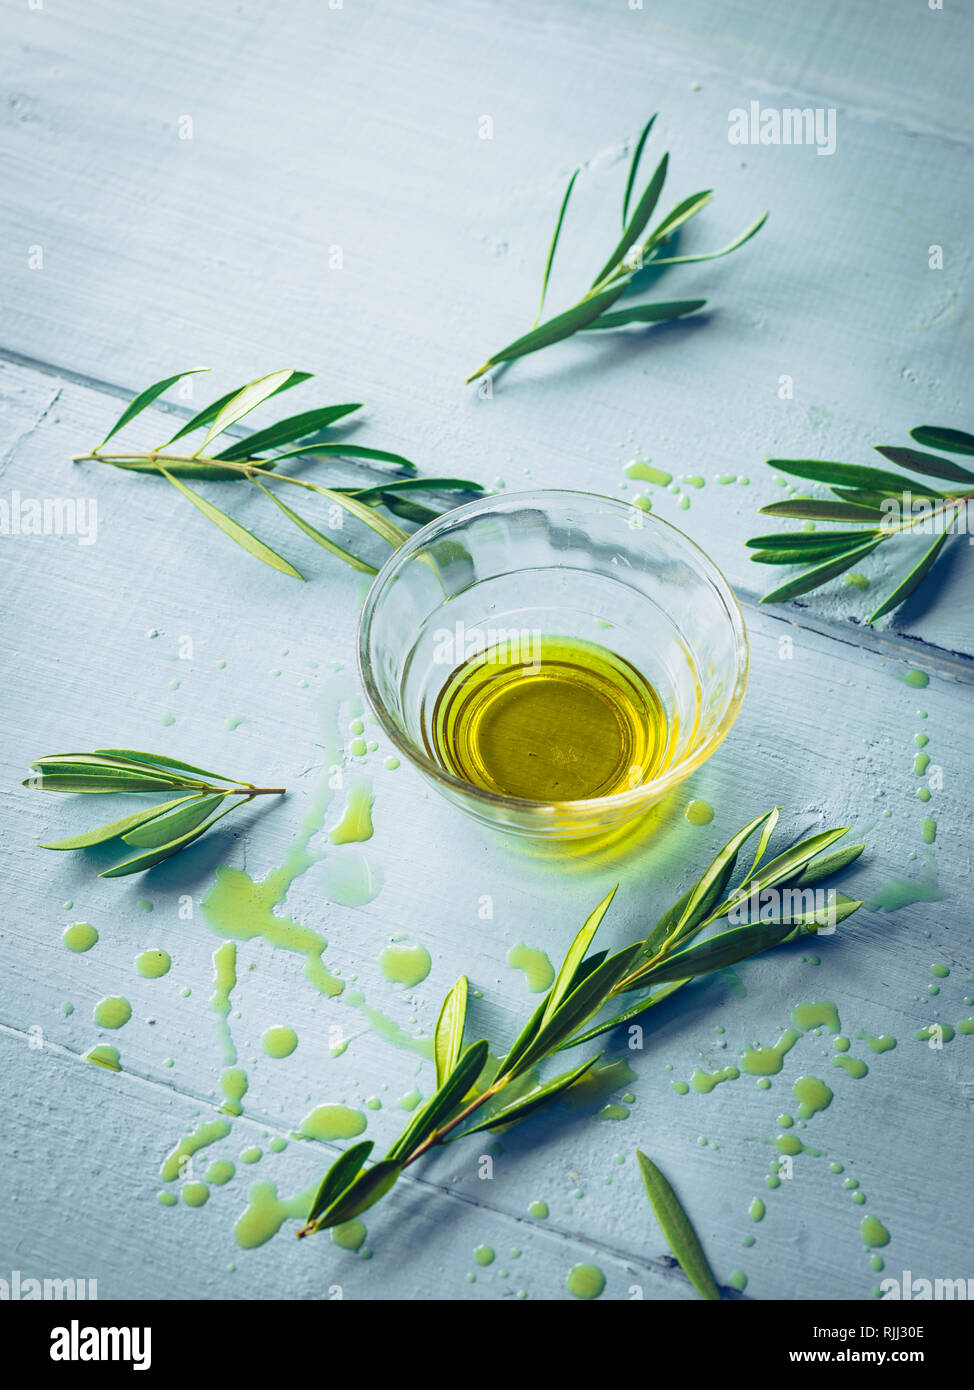 Olive oil with olive twig in a glass bowl - Stock Image